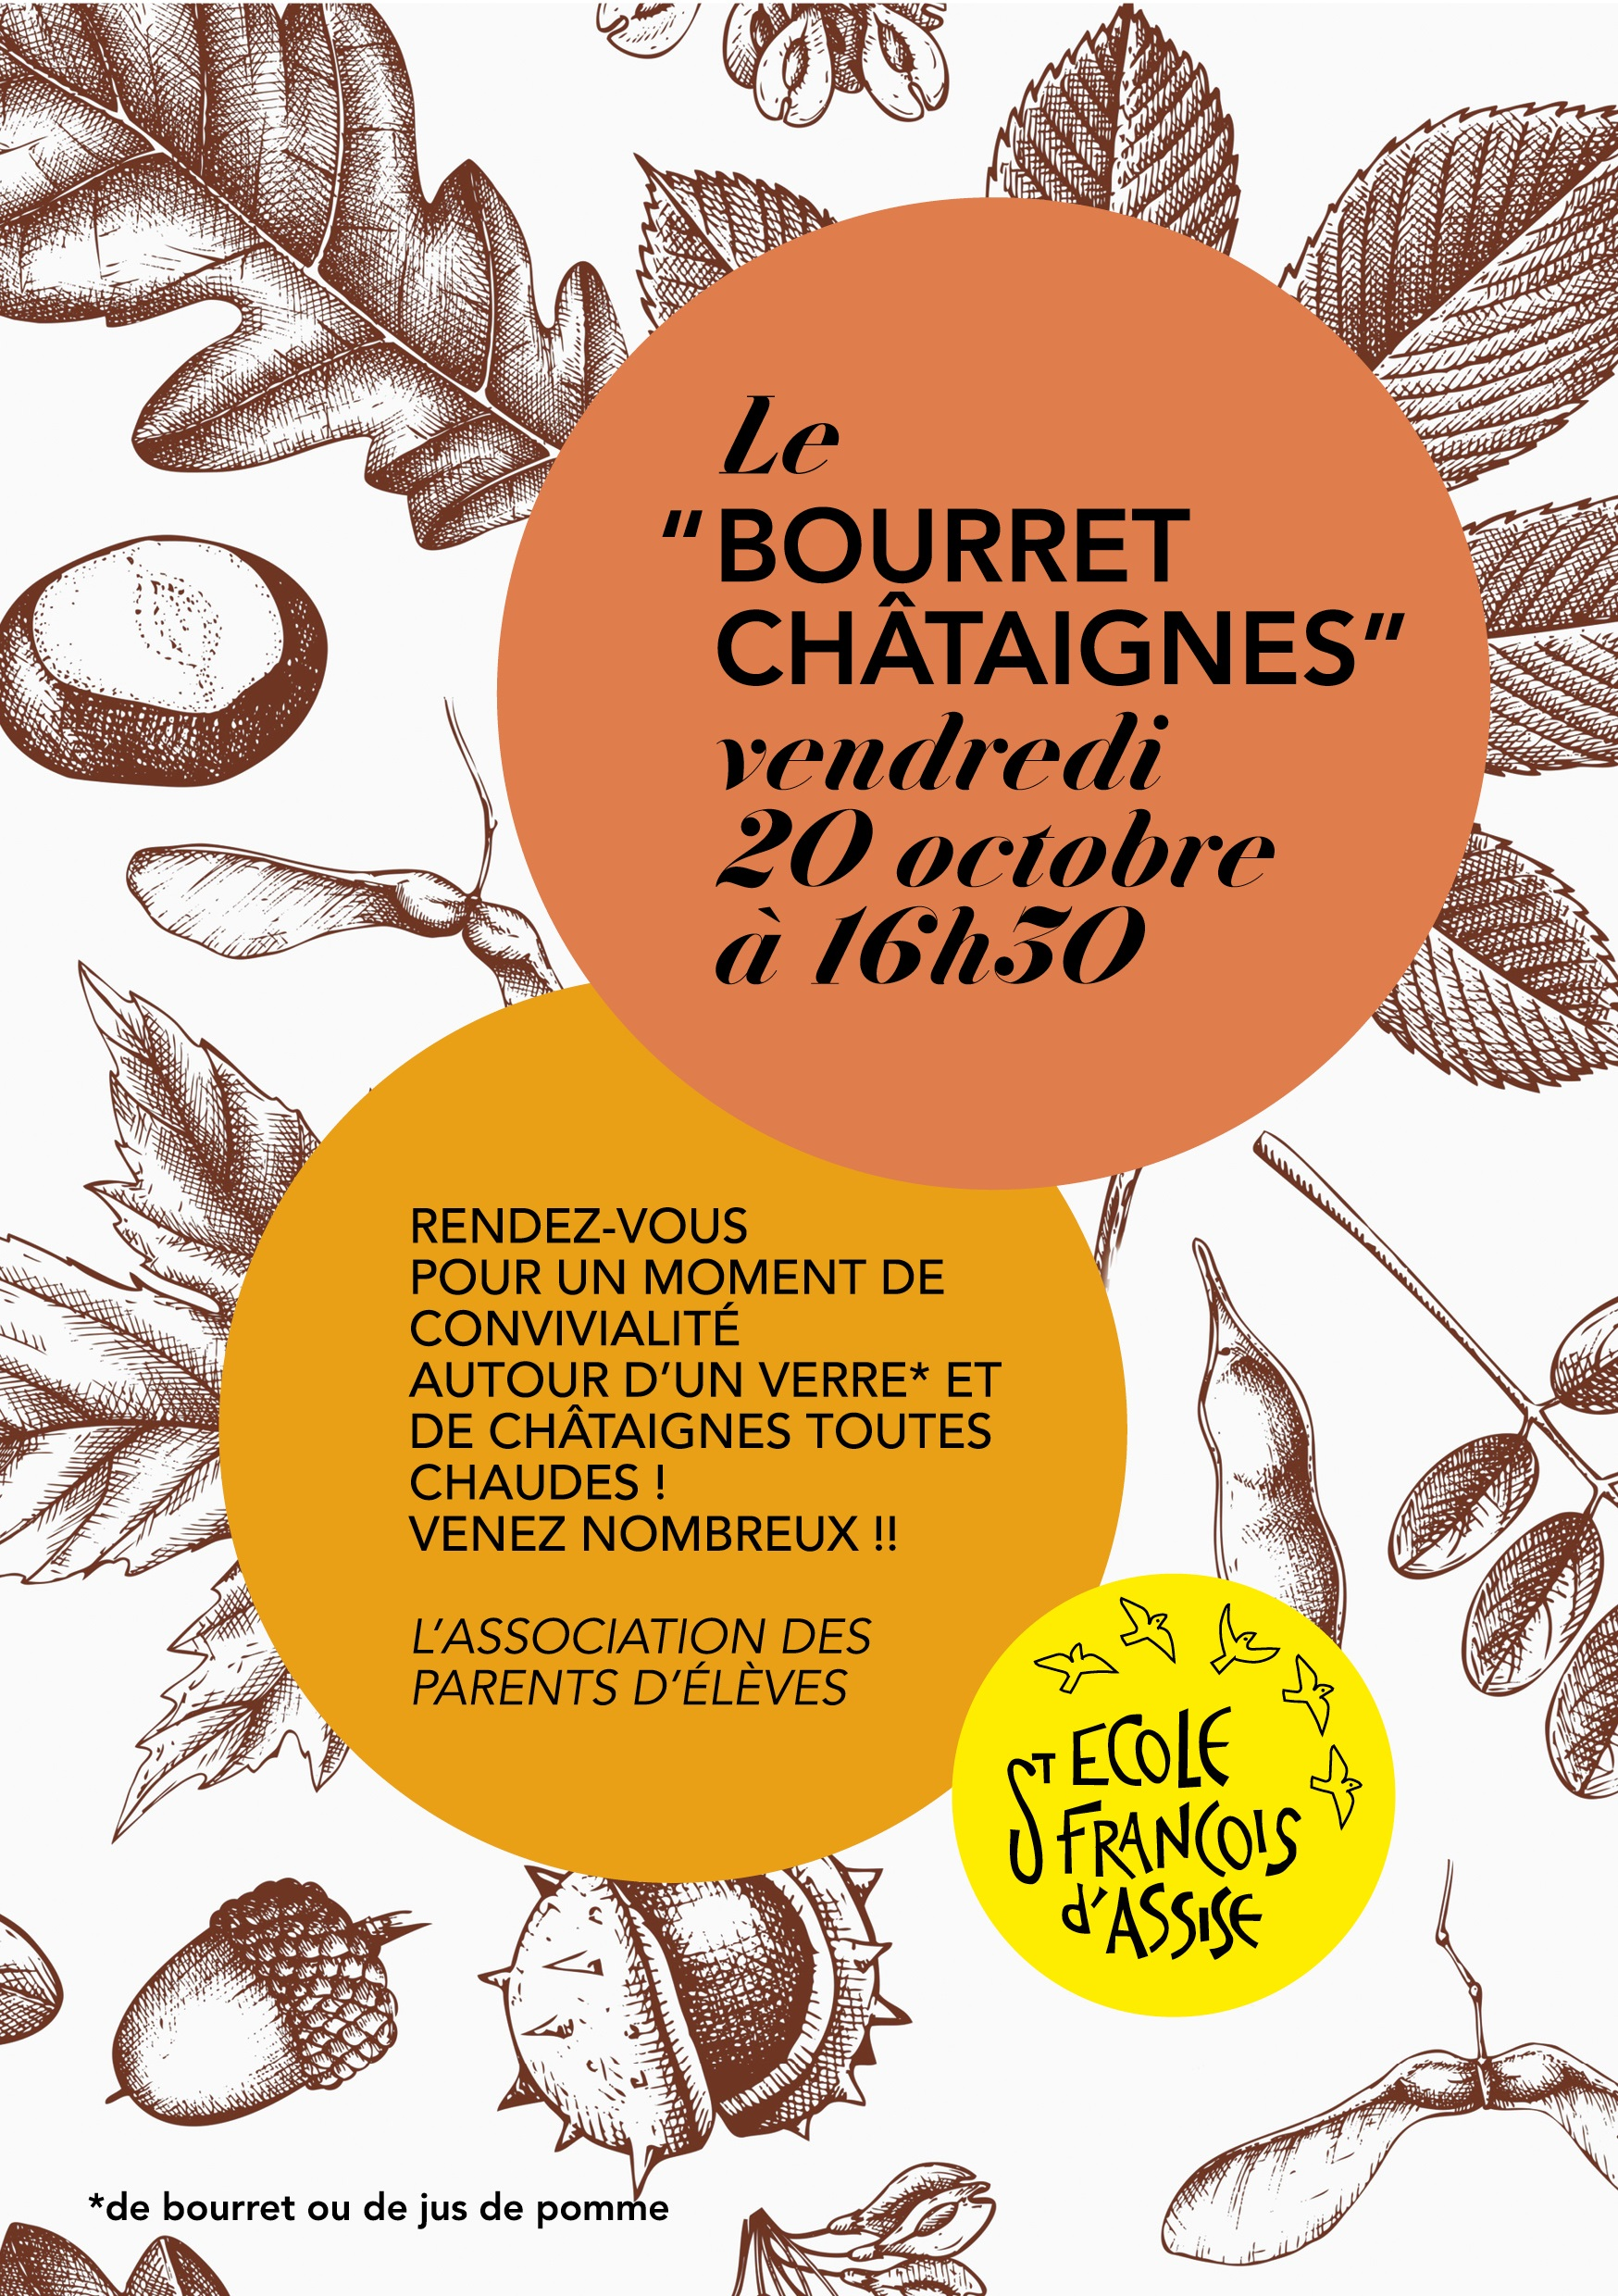 BOURRET CHATAIGNES 20 oct 17